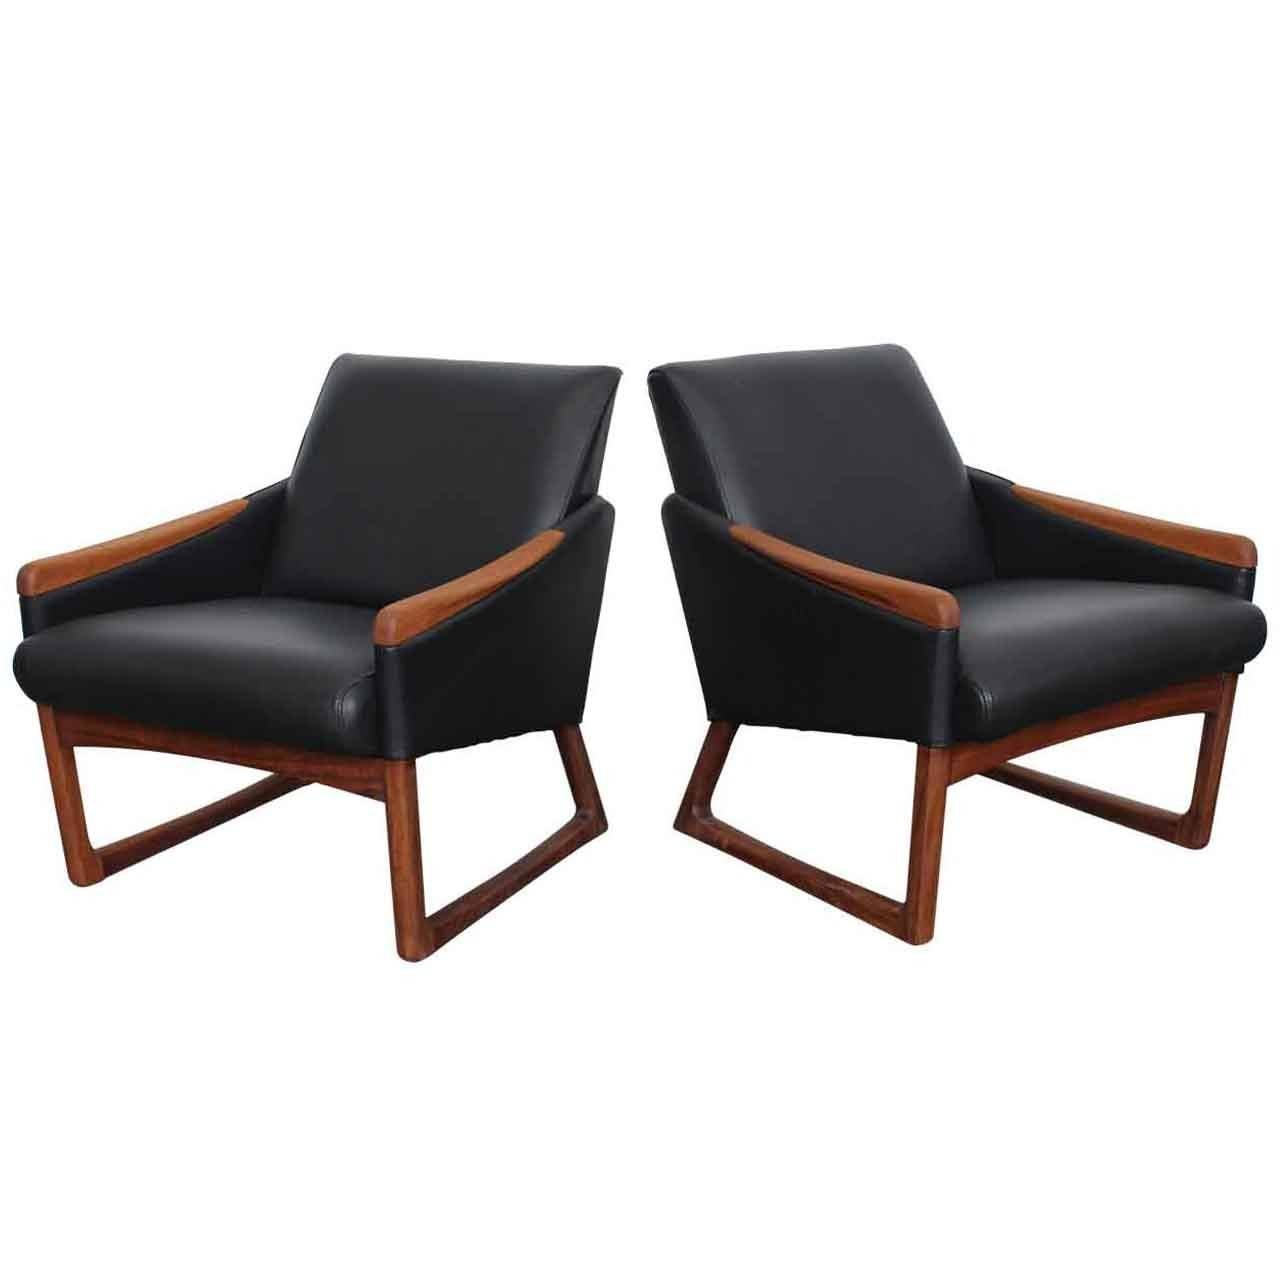 Mid Century Modern Lounge Chairs Mid Century Modern Leather Lounge Chairs At 1stdibs